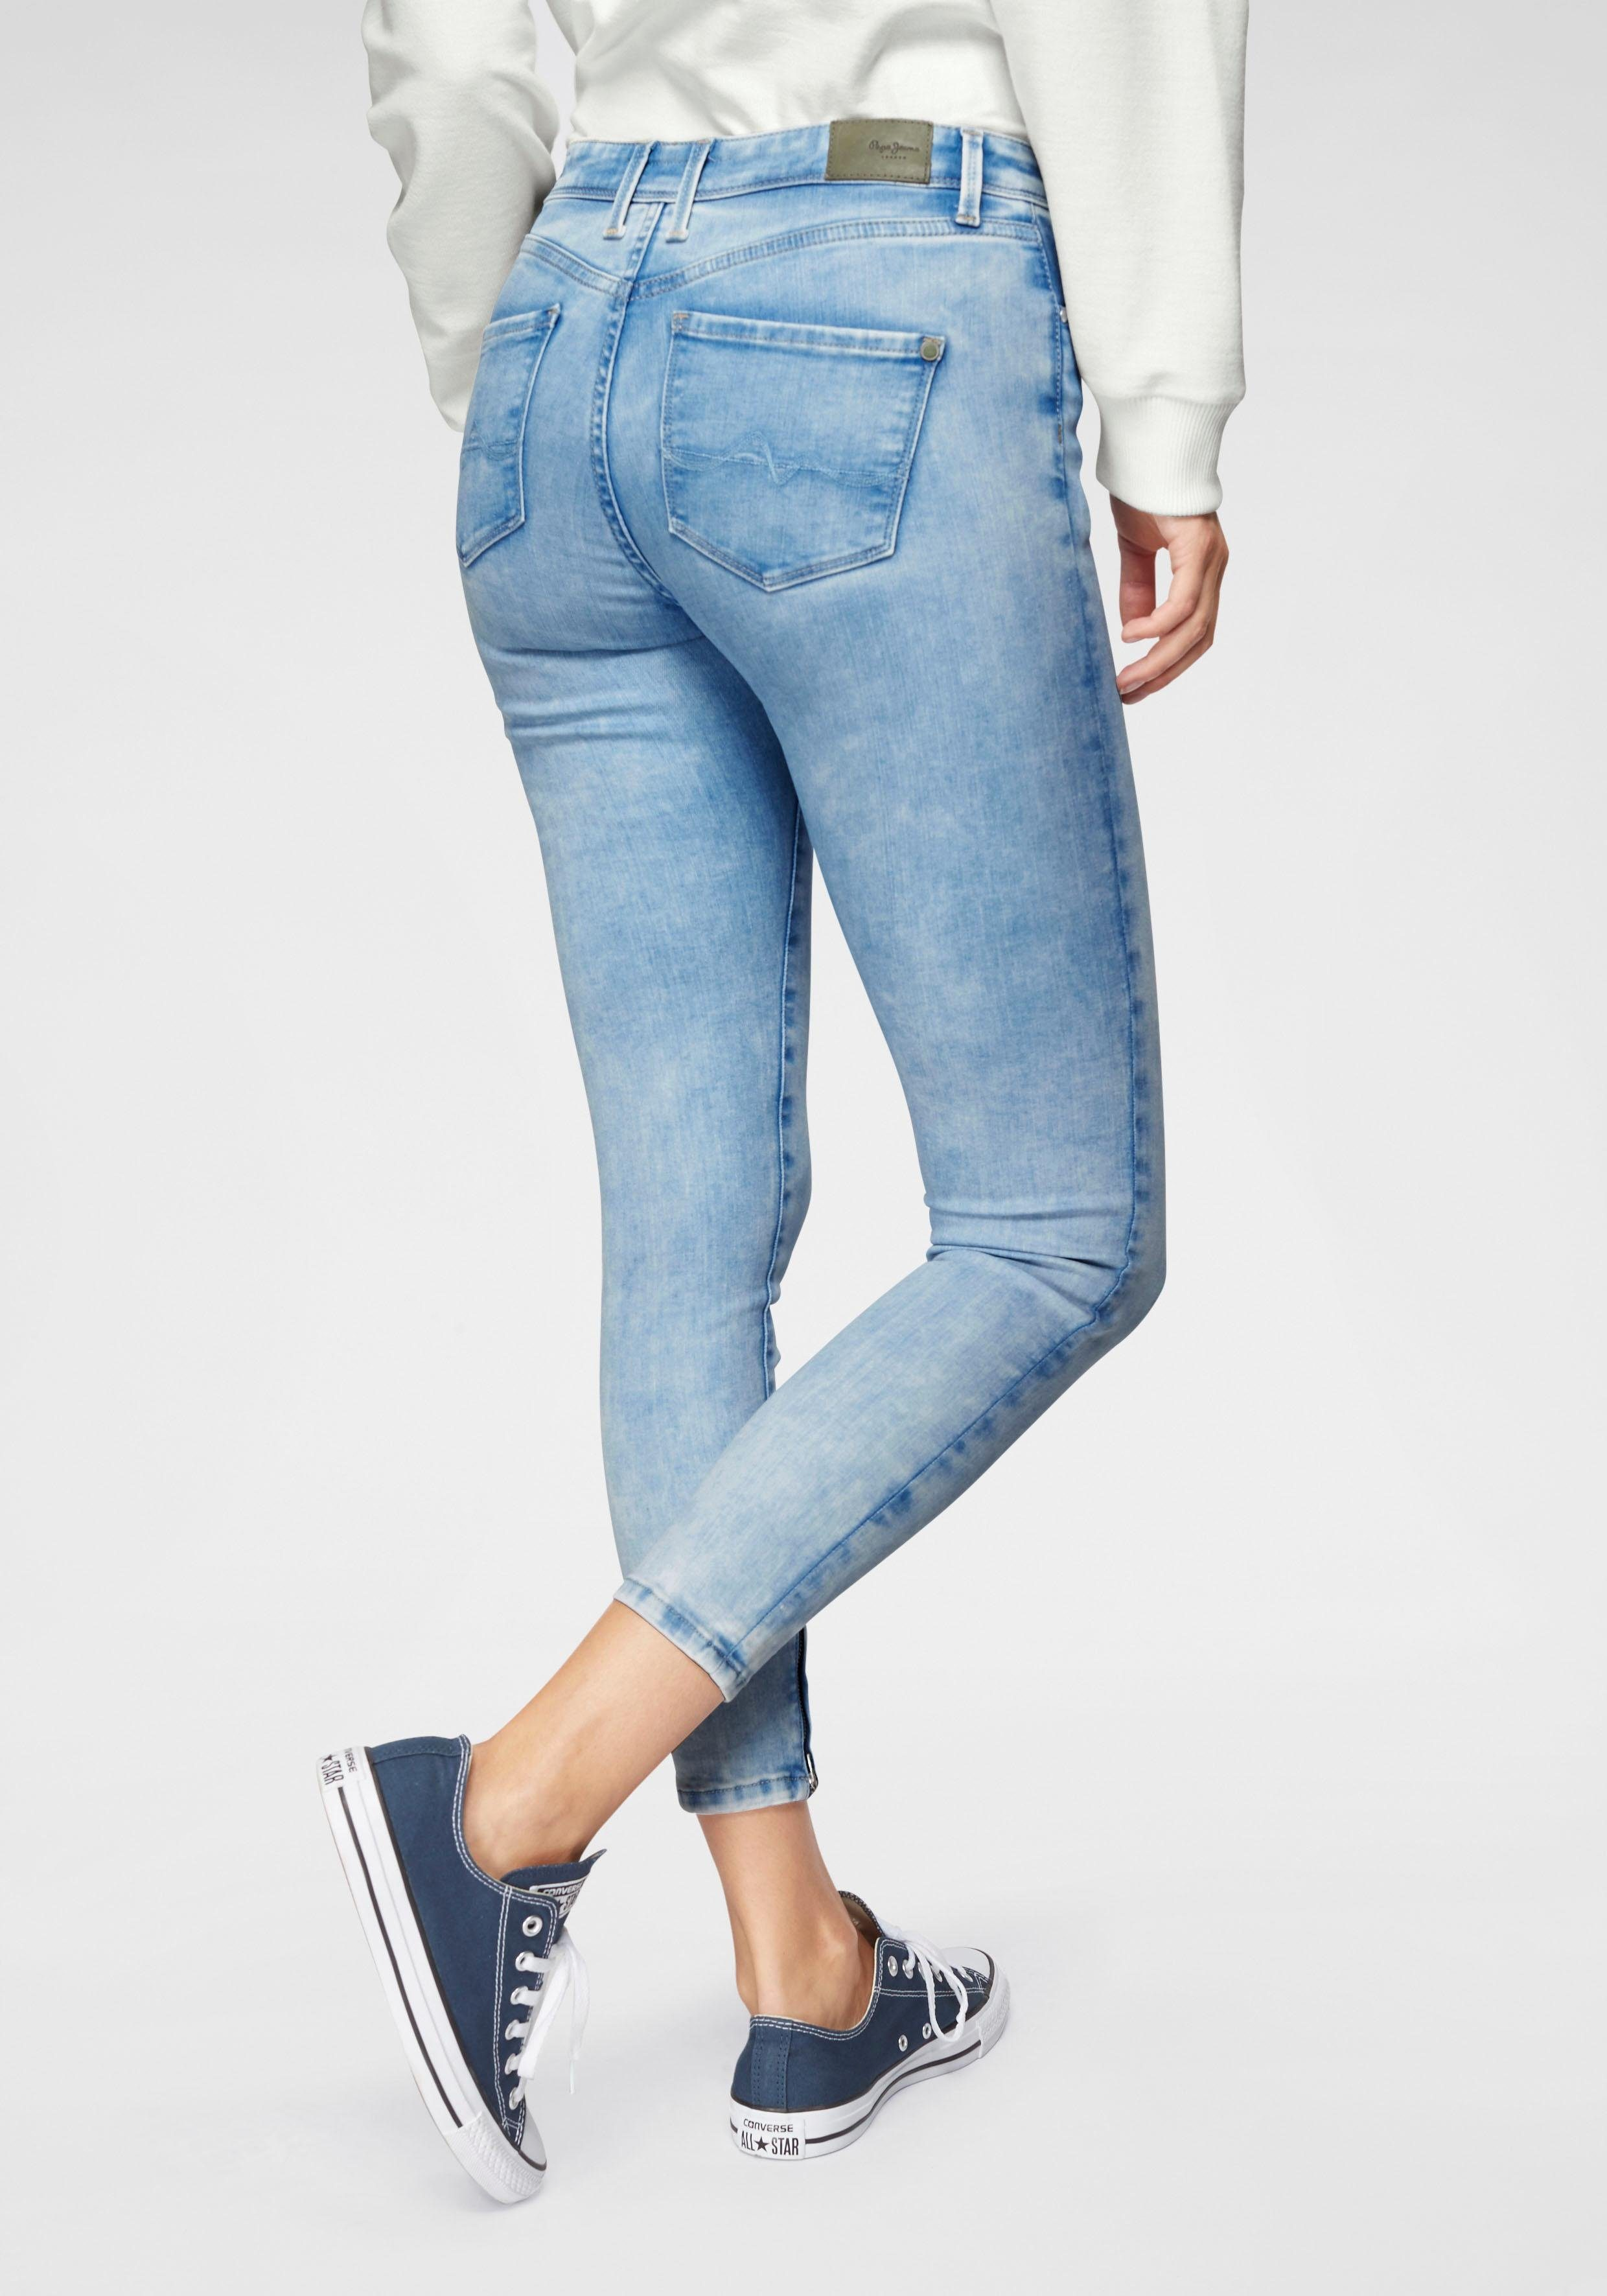 Pepe Jeans Skinny fit Jeans »CHER HIGH« WISER WASH® online kaufen | OTTO